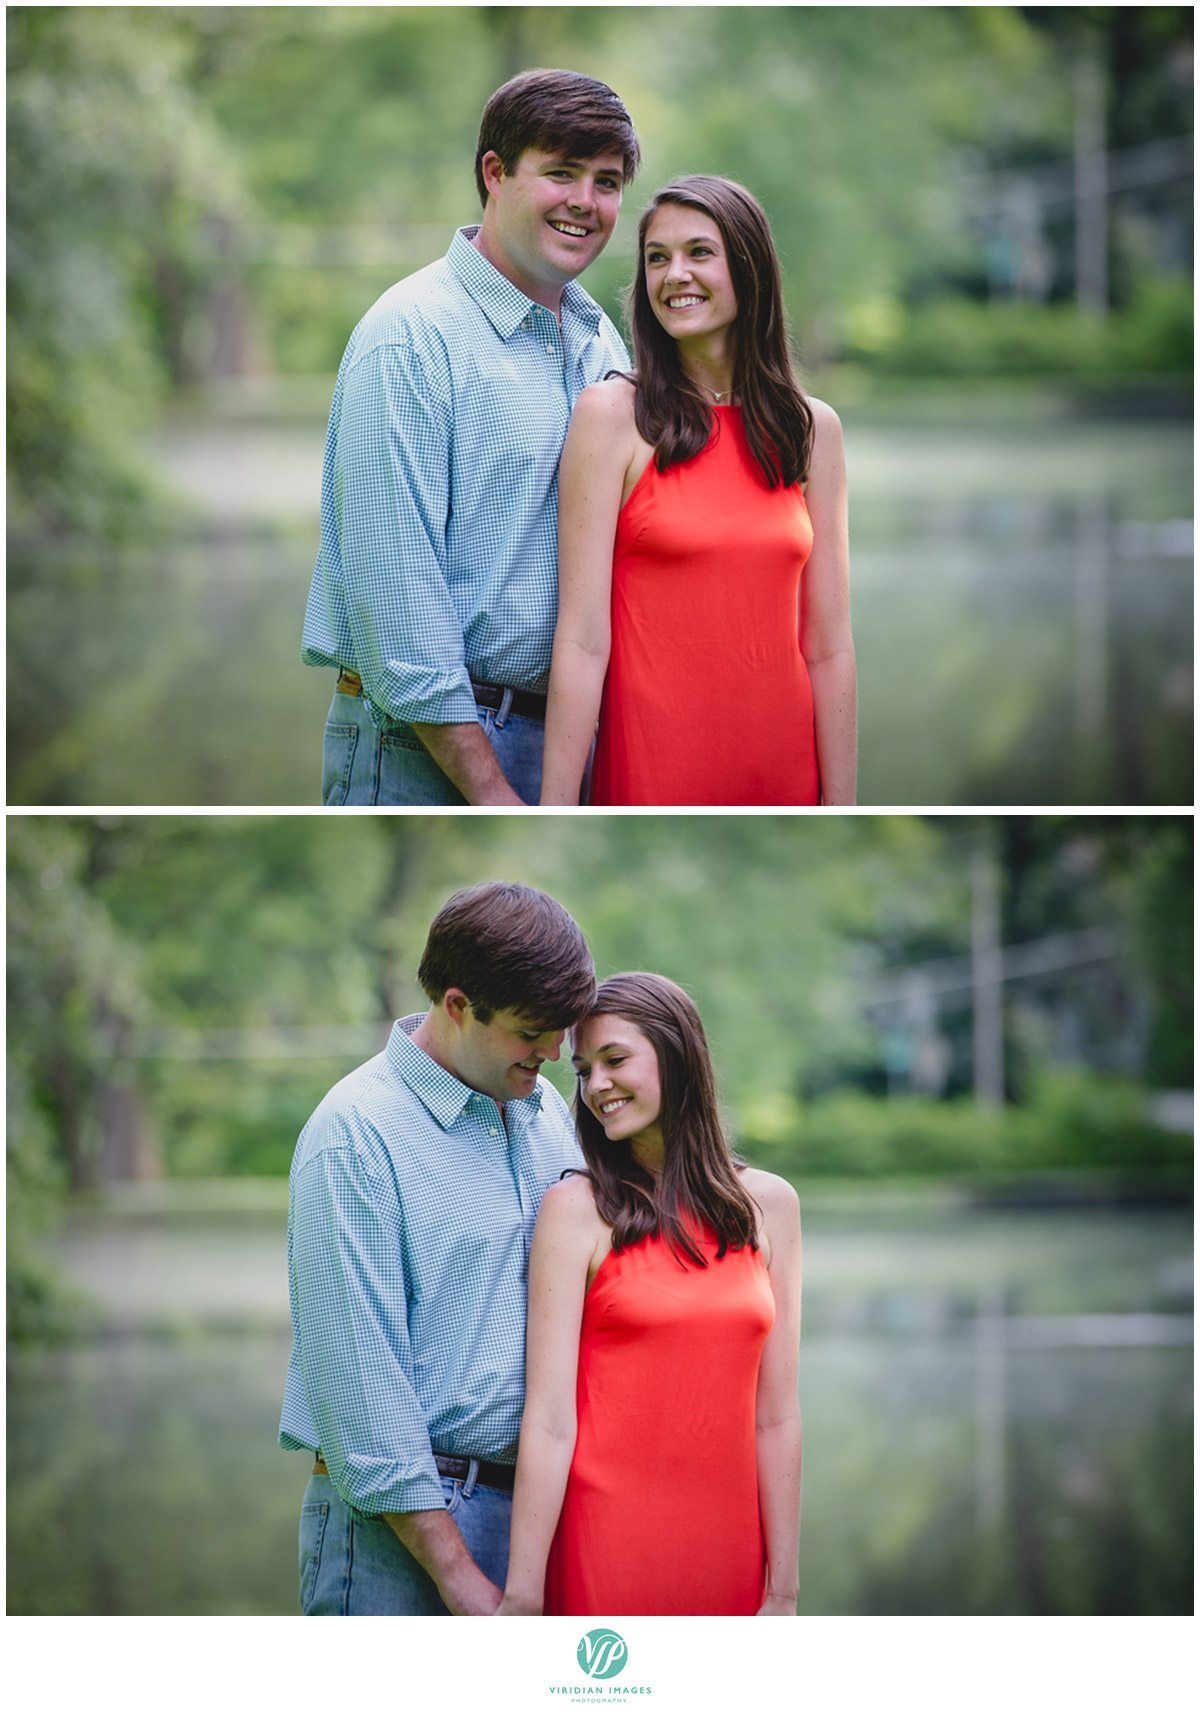 Atlanta-duck-poind-engagement-session-viridian-images-photography-photo-12